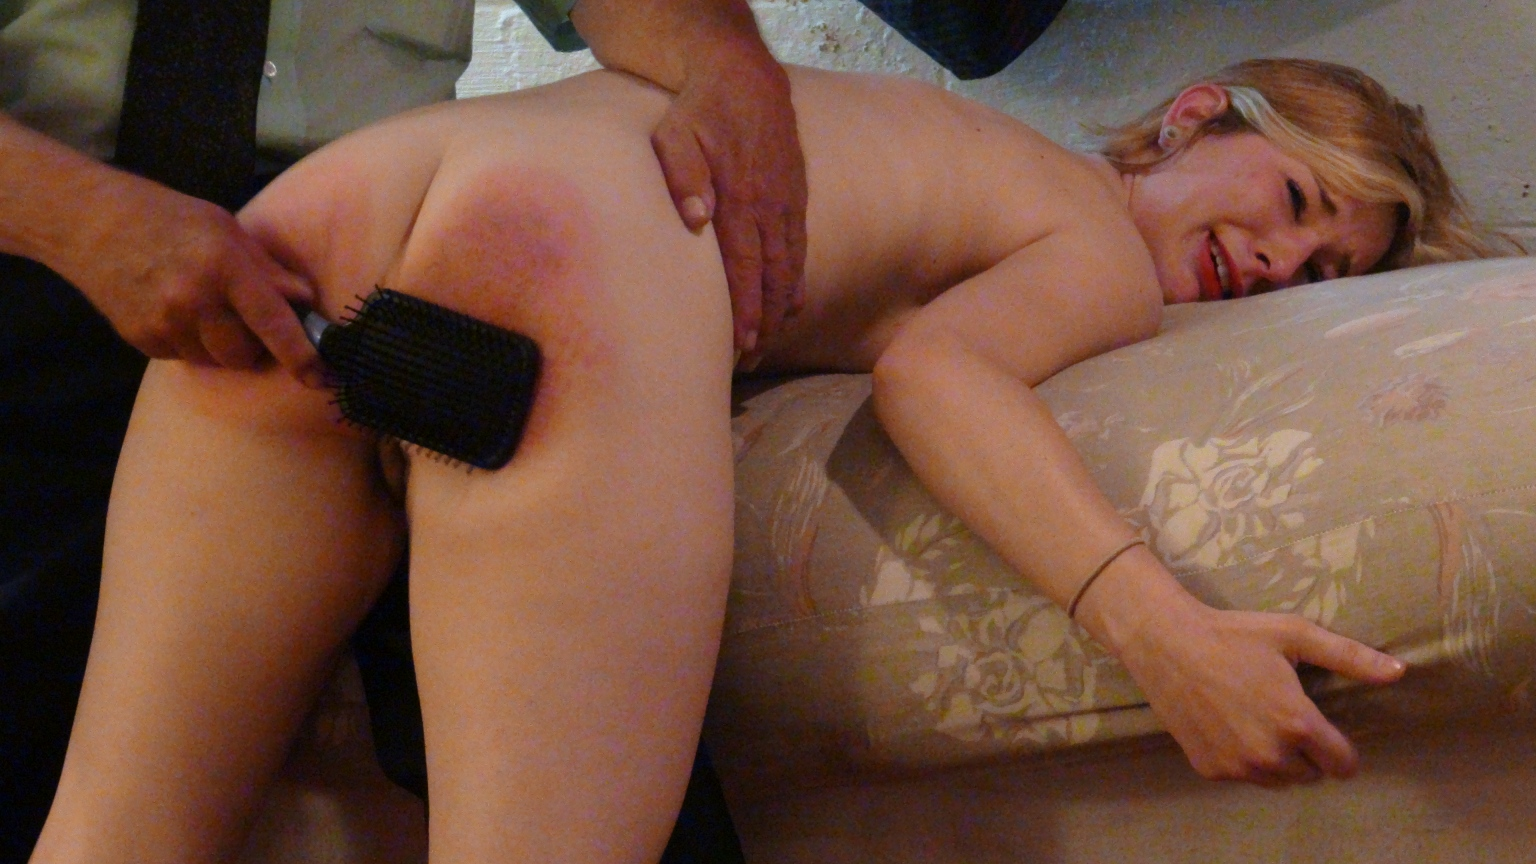 Naked Girl Punishment Enema Spanking: http://cumception.com/naked-girl-punishment-enema-spanking/